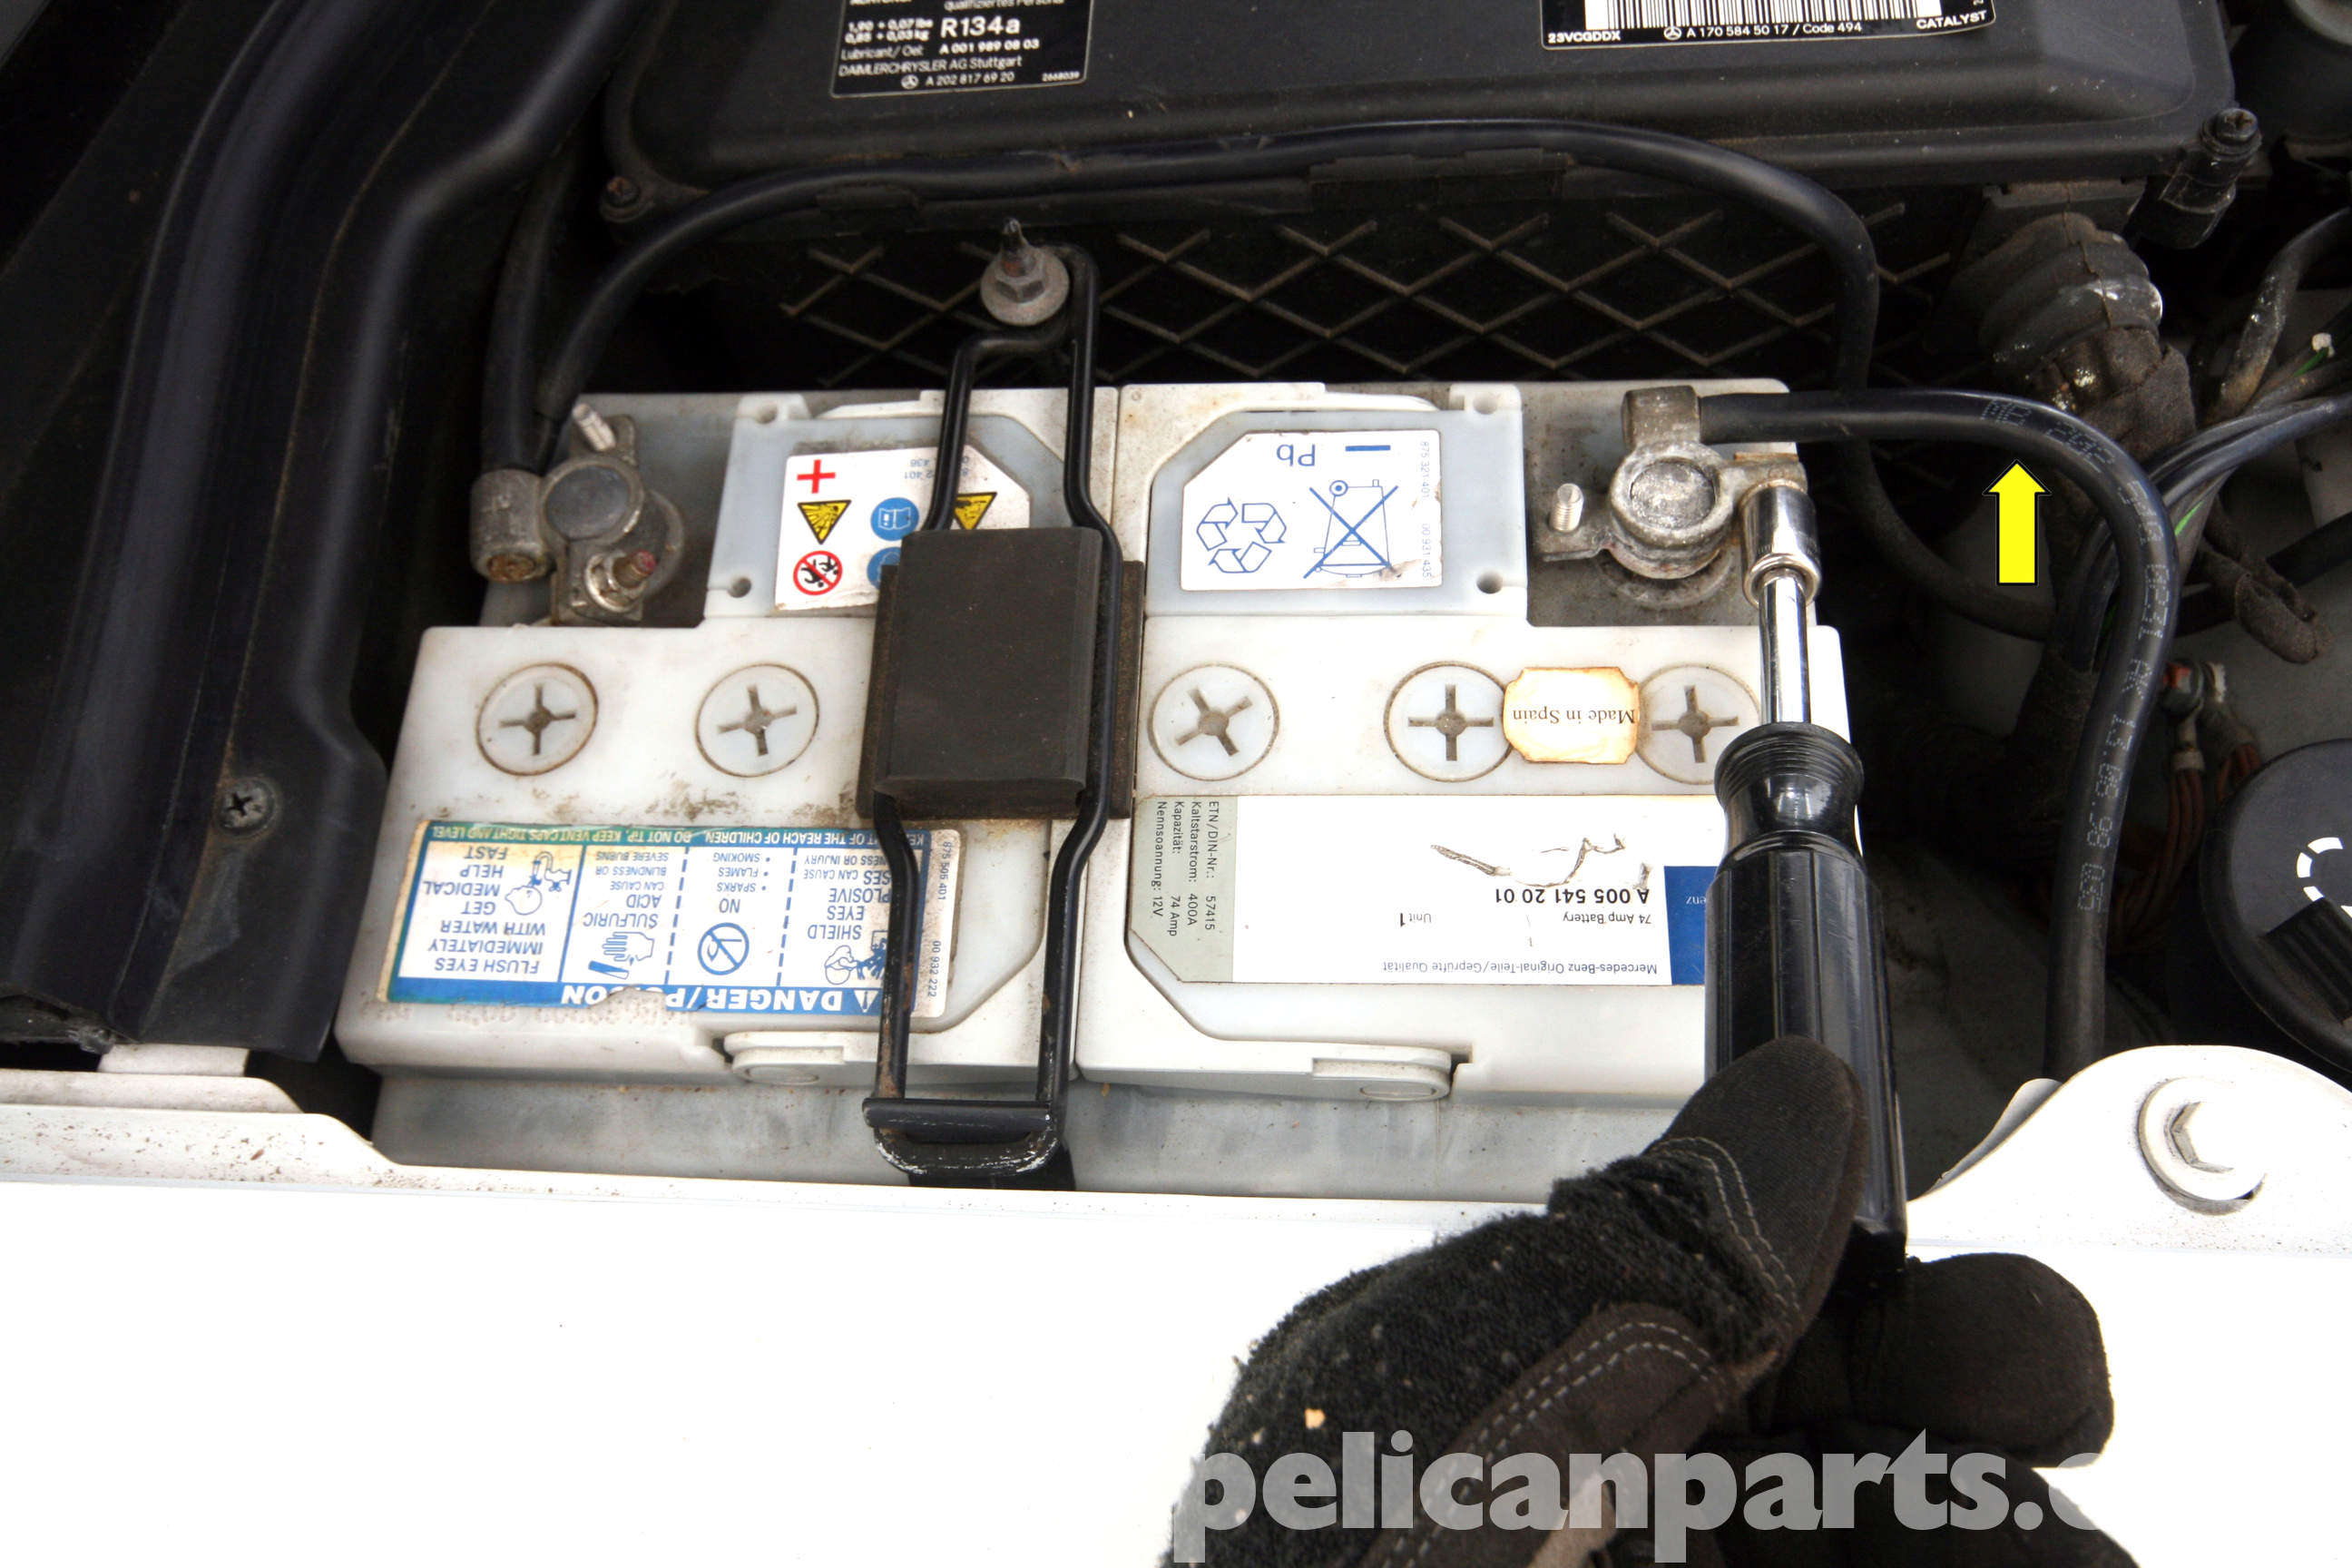 Josh Grobak: Car battery replacement which terminal first